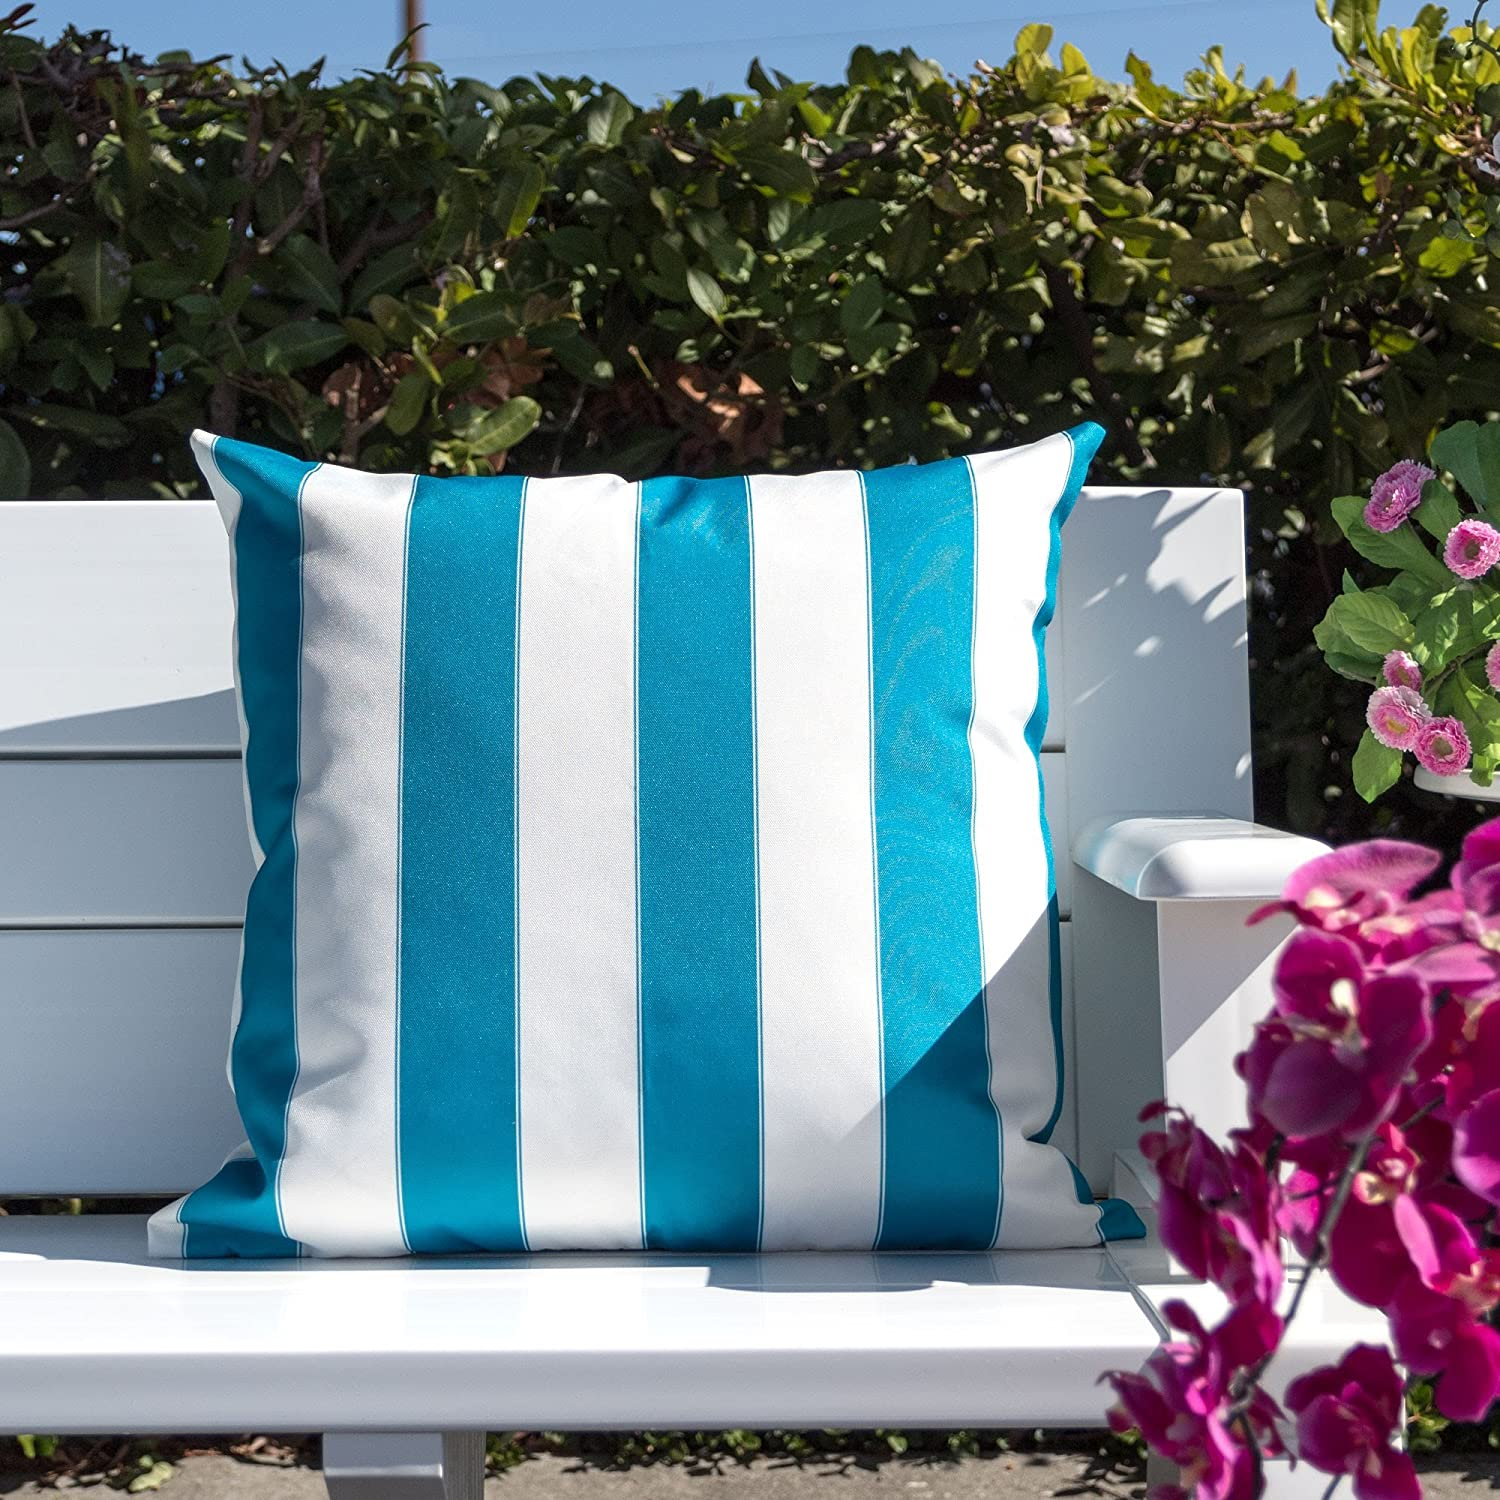 Homey Cozy Outdoor Throw Pillow Cover Classic Stripe Aqua Blue Large Pillow Cushion Water//UV Fade//Stain-Resistance For Patio Lawn Couch Sofa Lounge 20x20 Cover Only